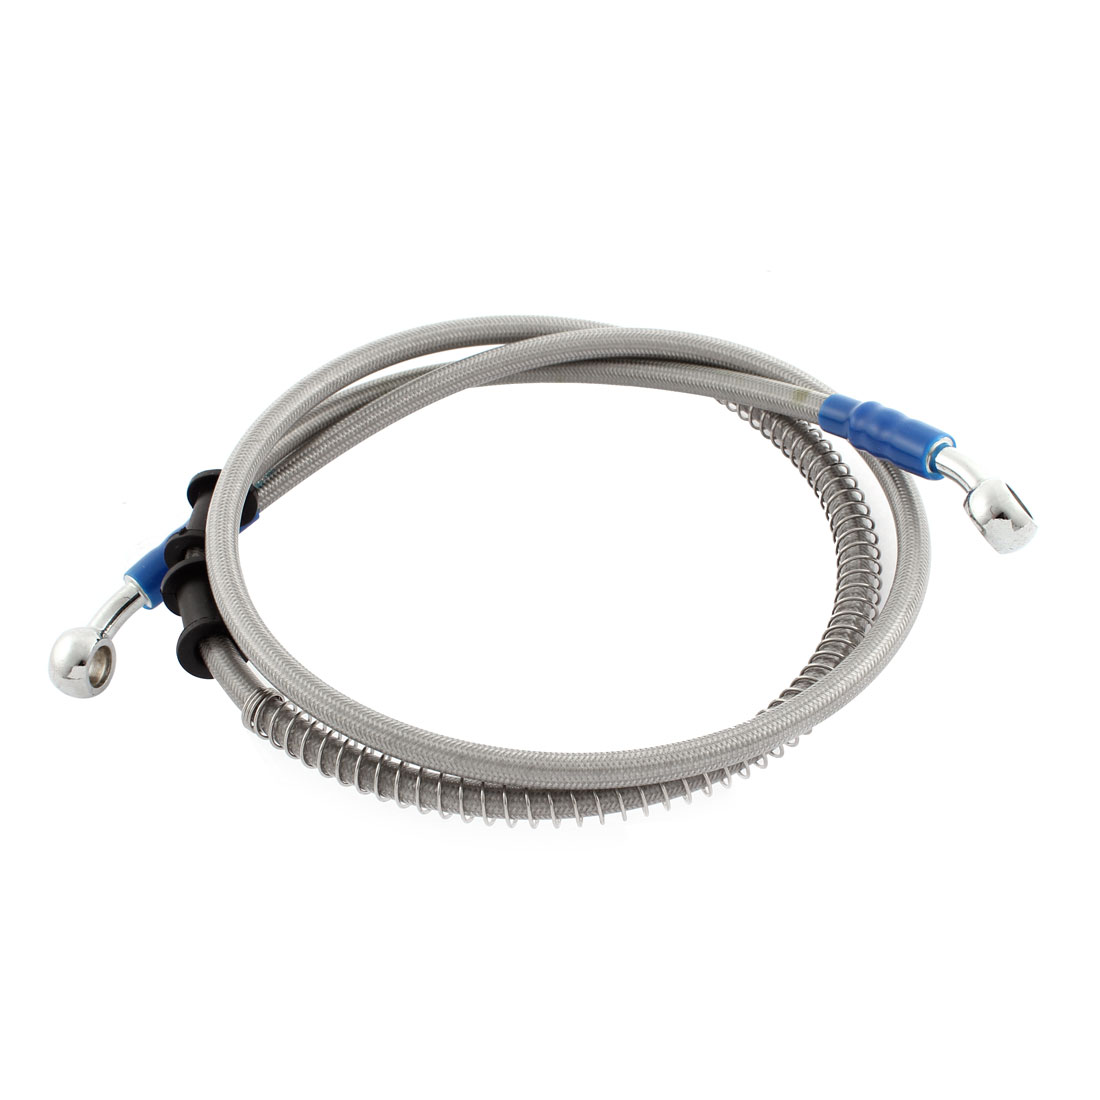 Motorcycle Motorbike Spare Part Rubber Shell Brake Line Hose 1200MM Long